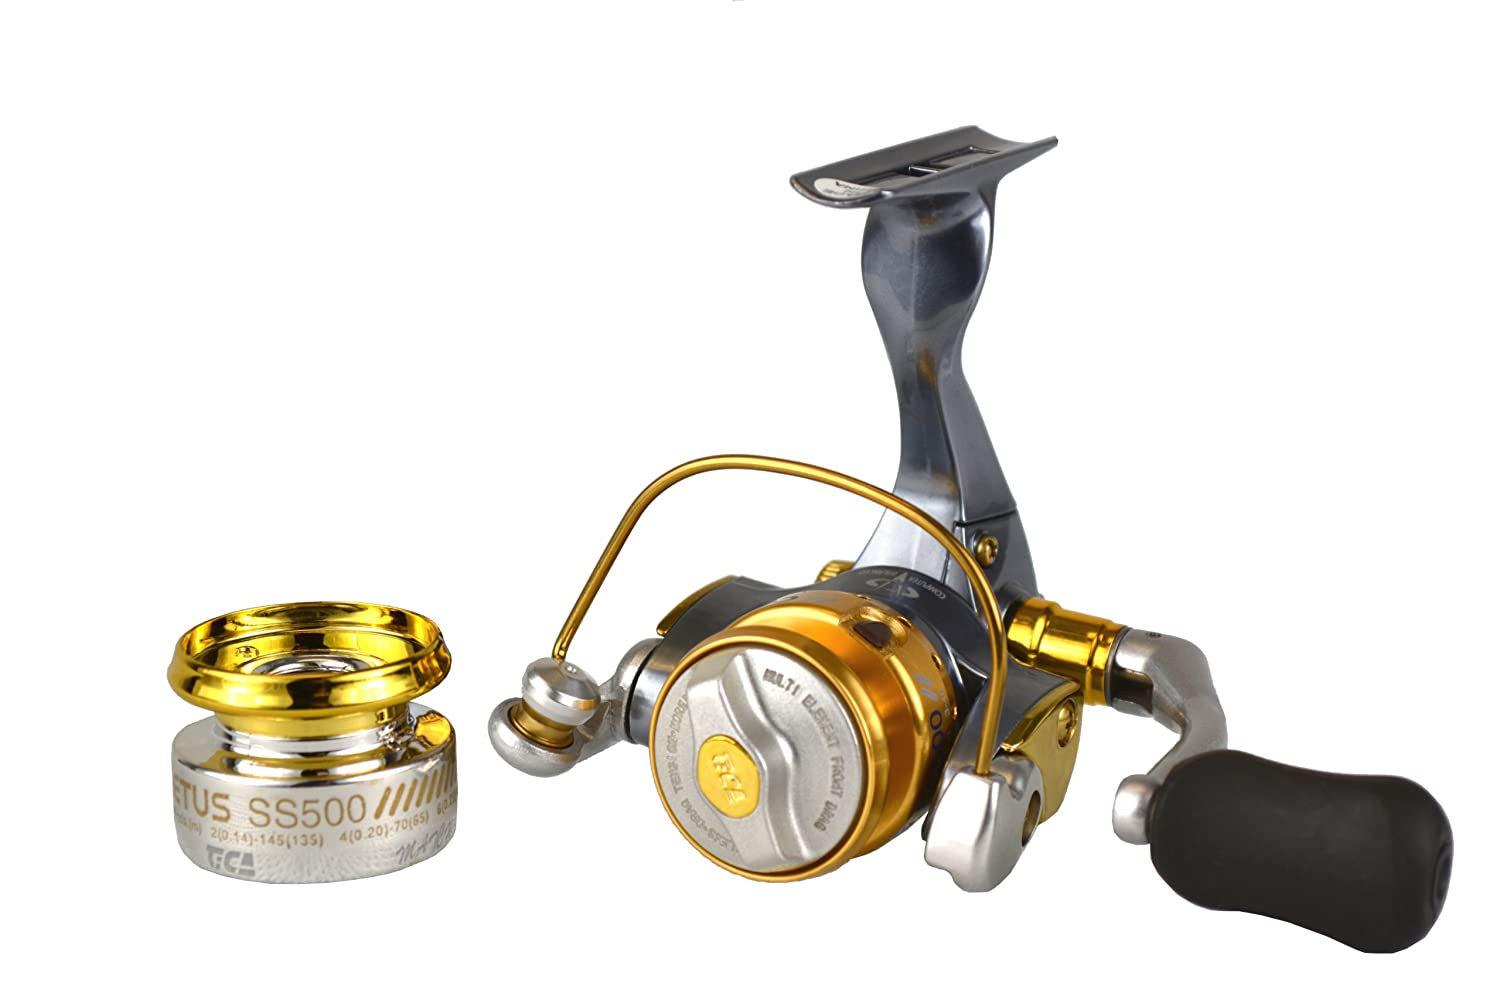 TICA SE500 Cetus Trout Fishing Series